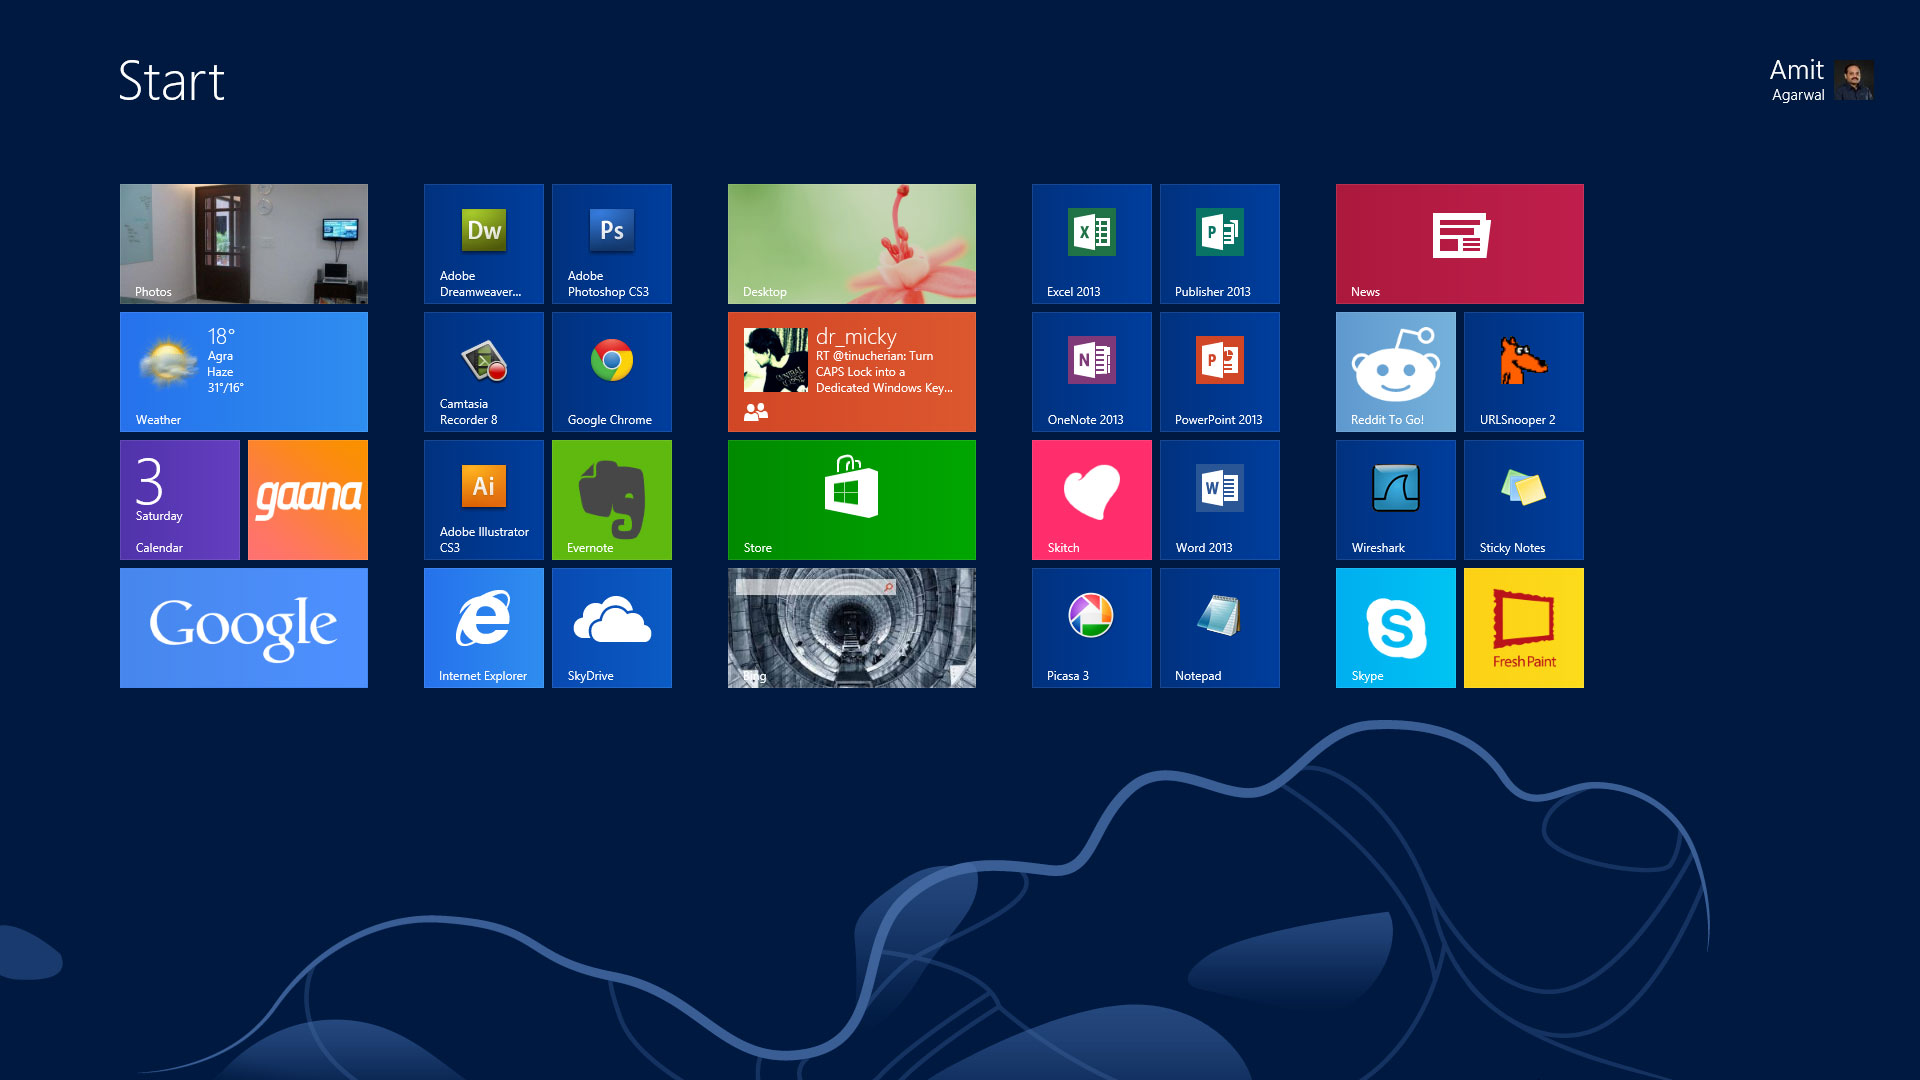 windows 8 start screen knowhow click for details windows 8 start